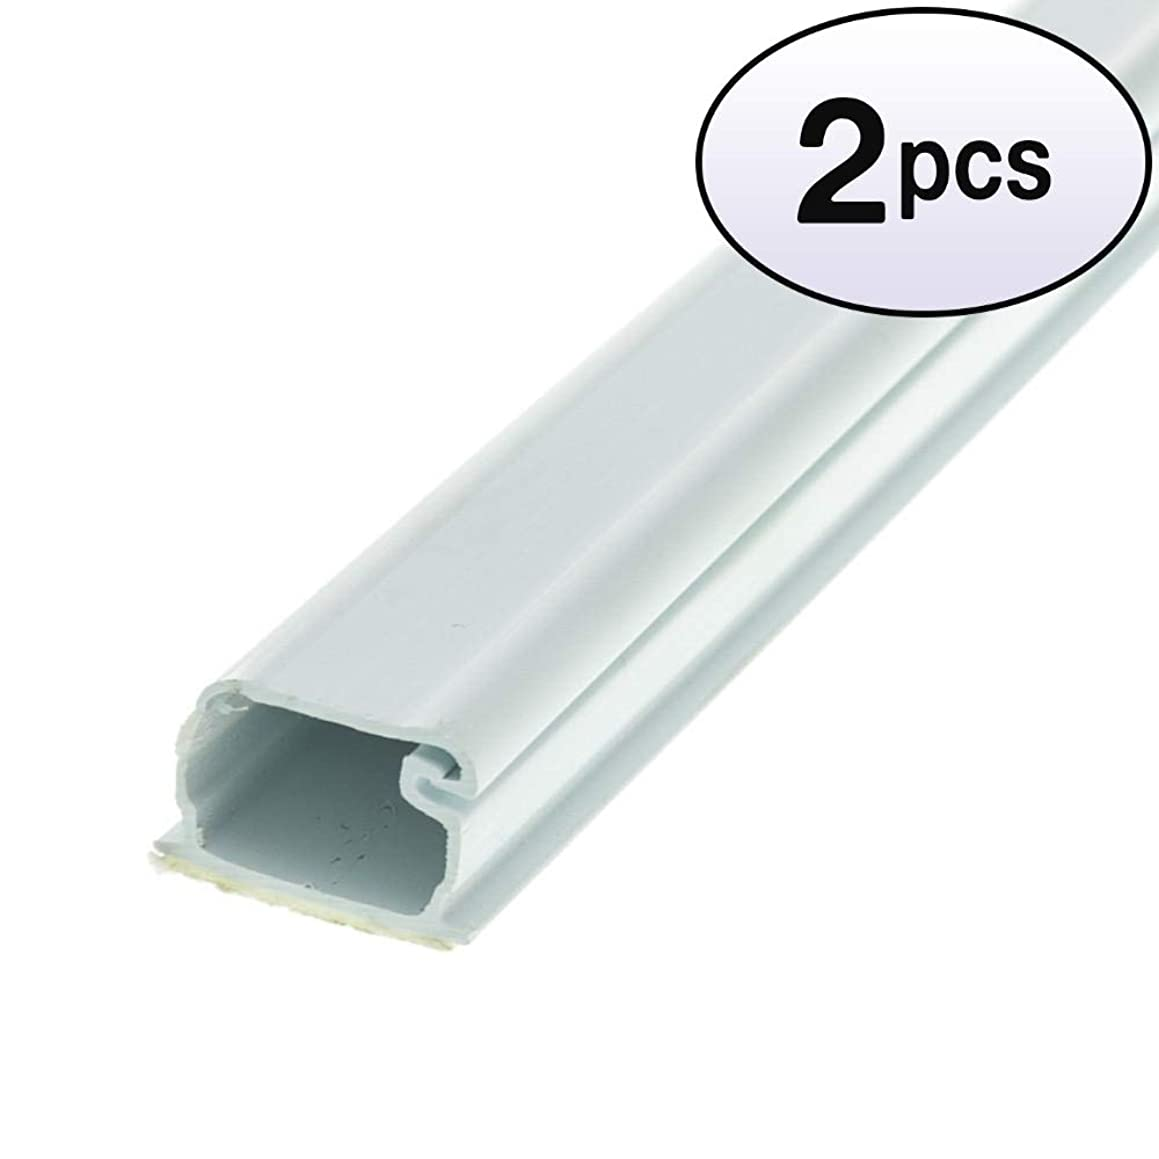 GOWOS (2 Pack) 1.25 inch Surface Mount Cable Raceway, White, Straight 6 Feet Section